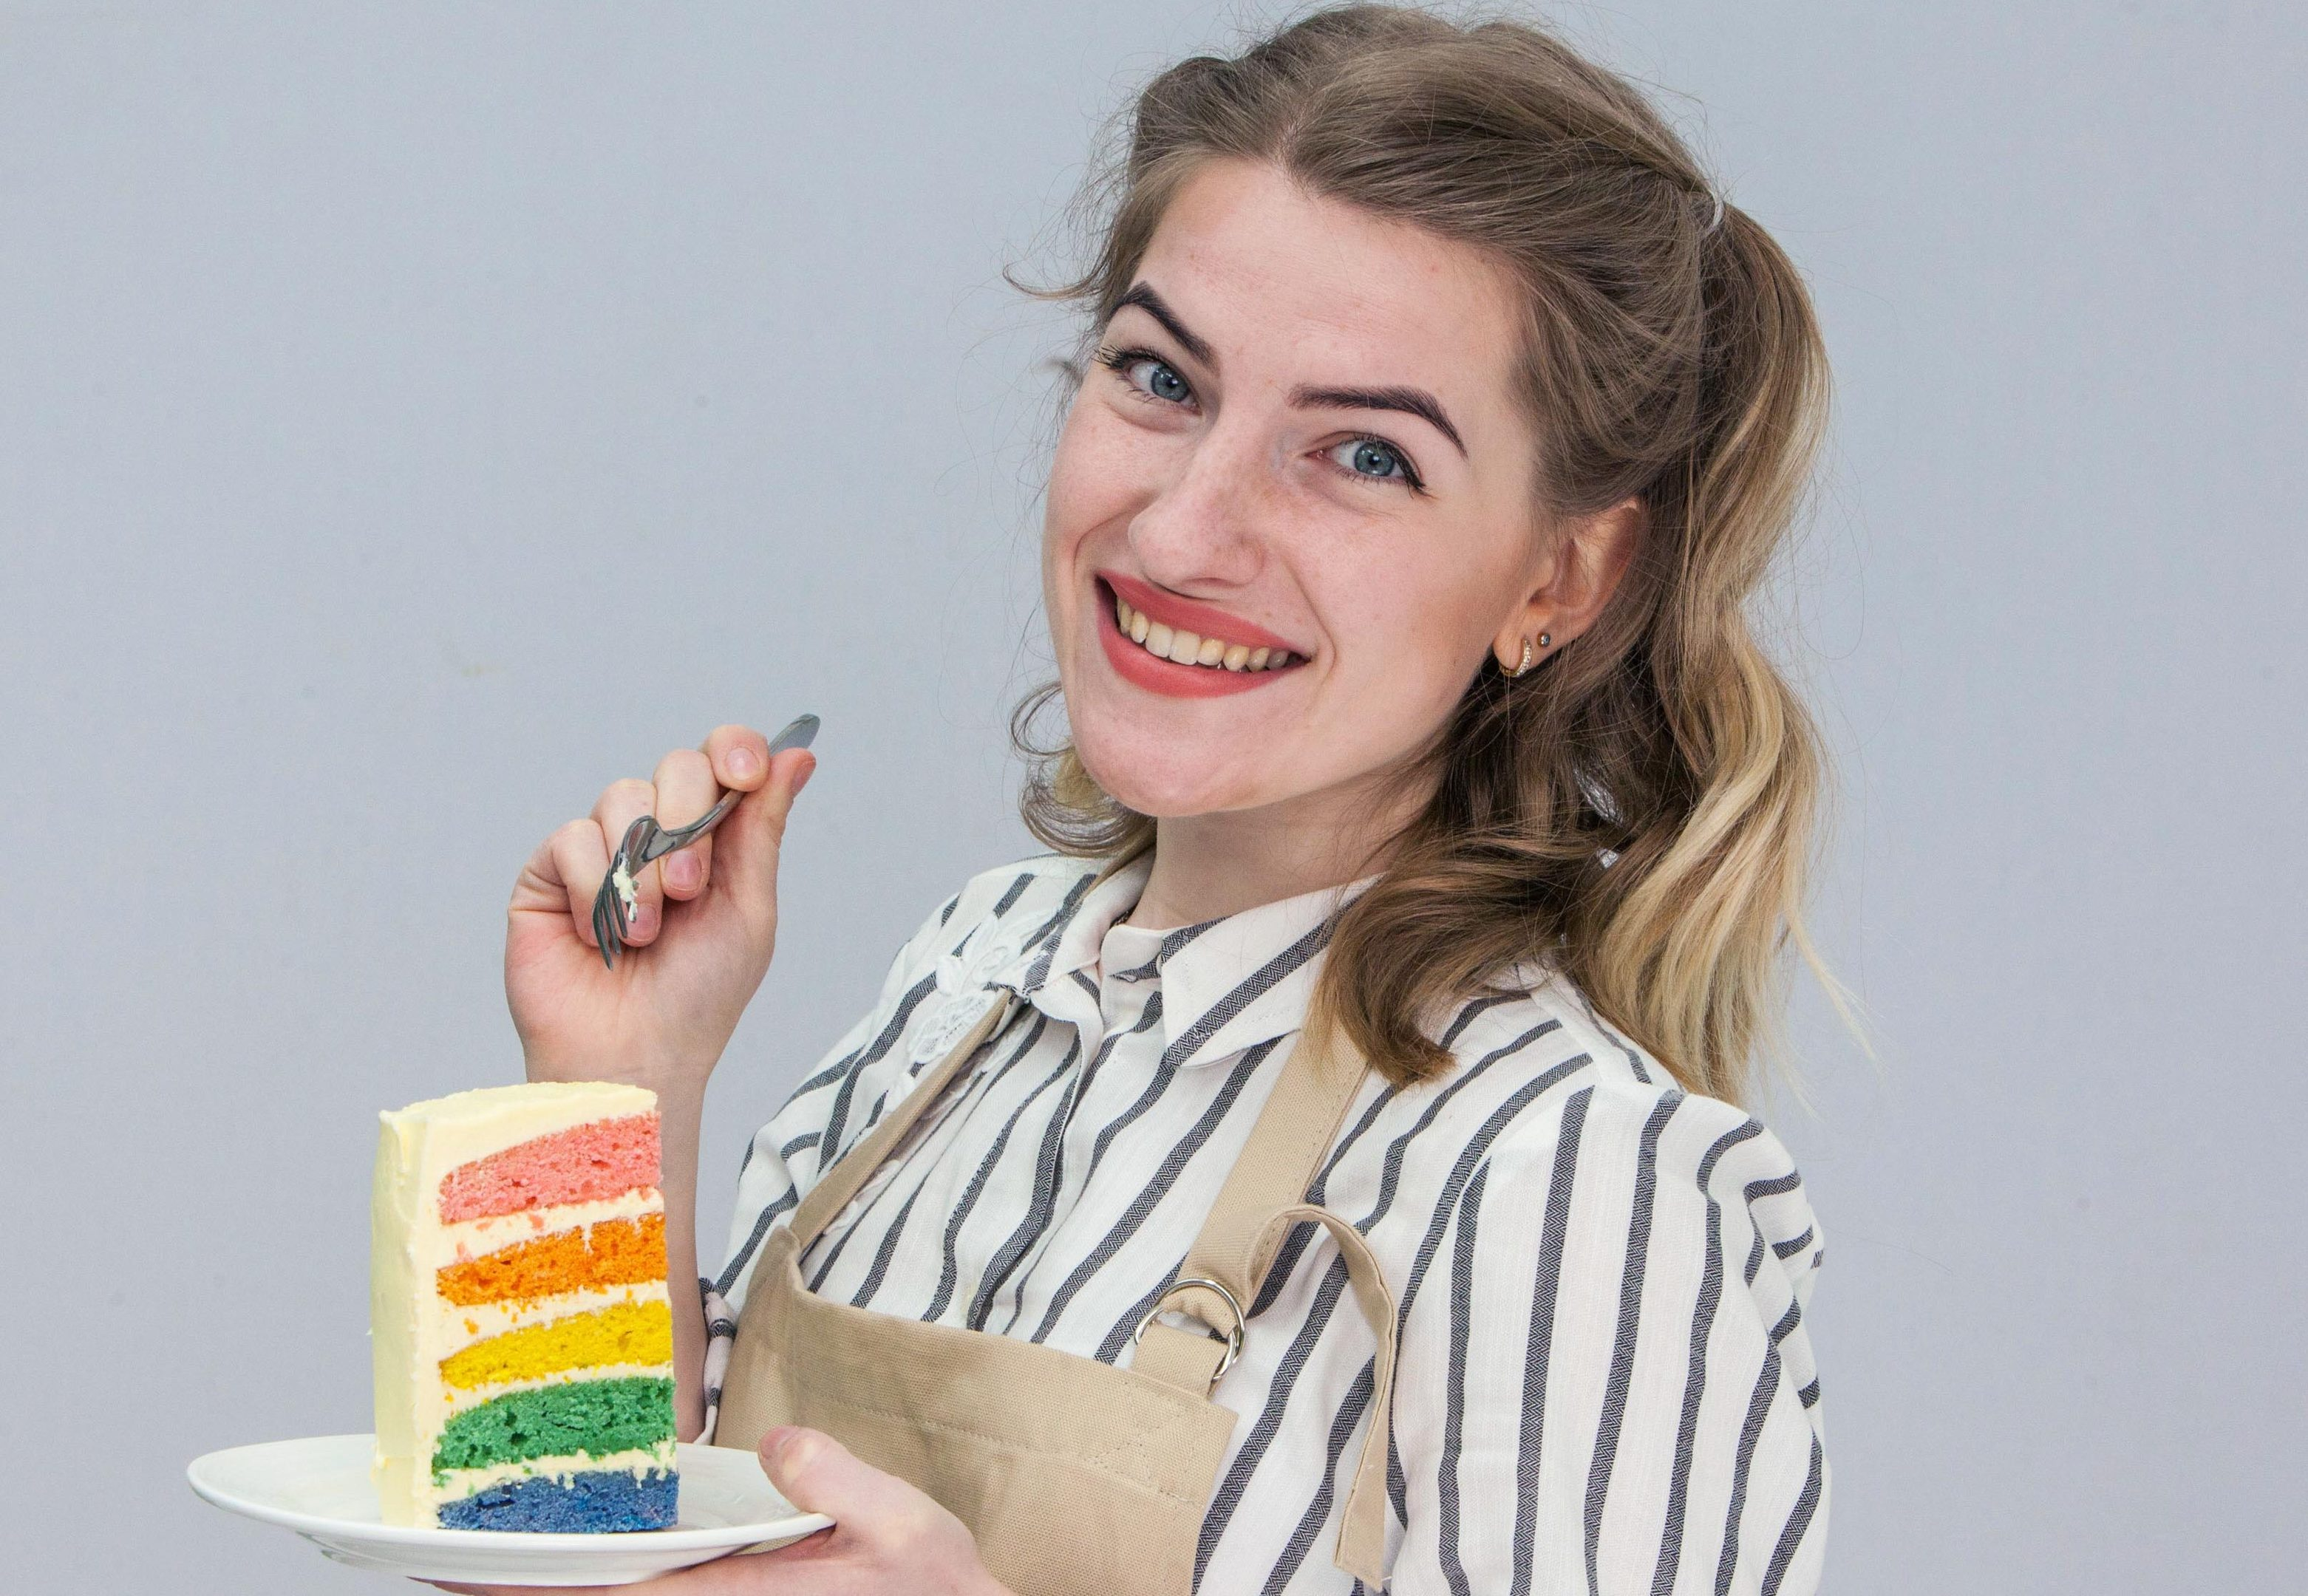 Great British Bake Off: Julia (Channel 4)